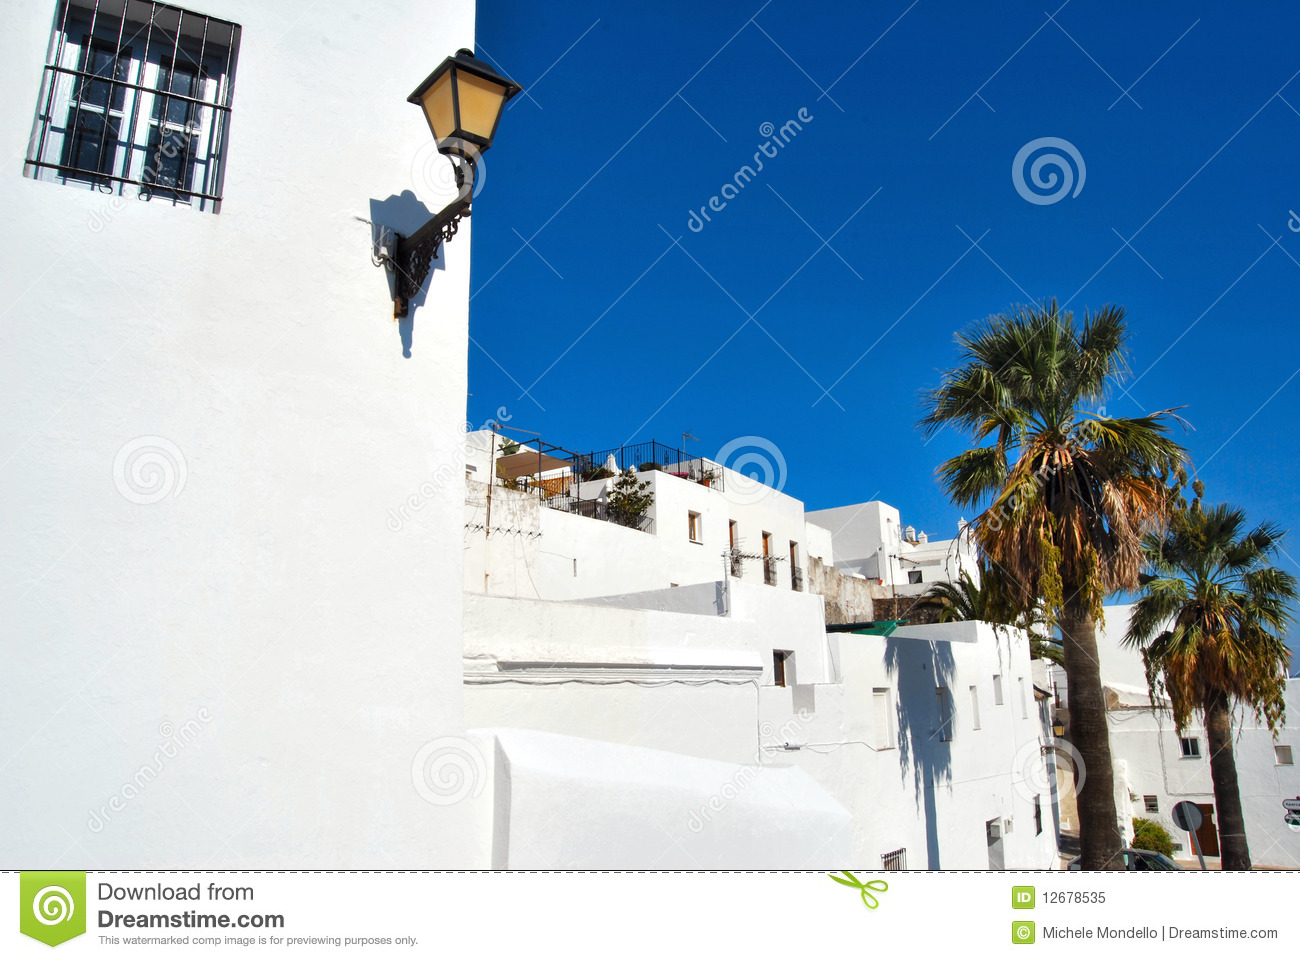 Vejer de la Frontera Spain  city photos : Vejer De La Frontera, Spain Royalty Free Stock Photo Image: 12678535